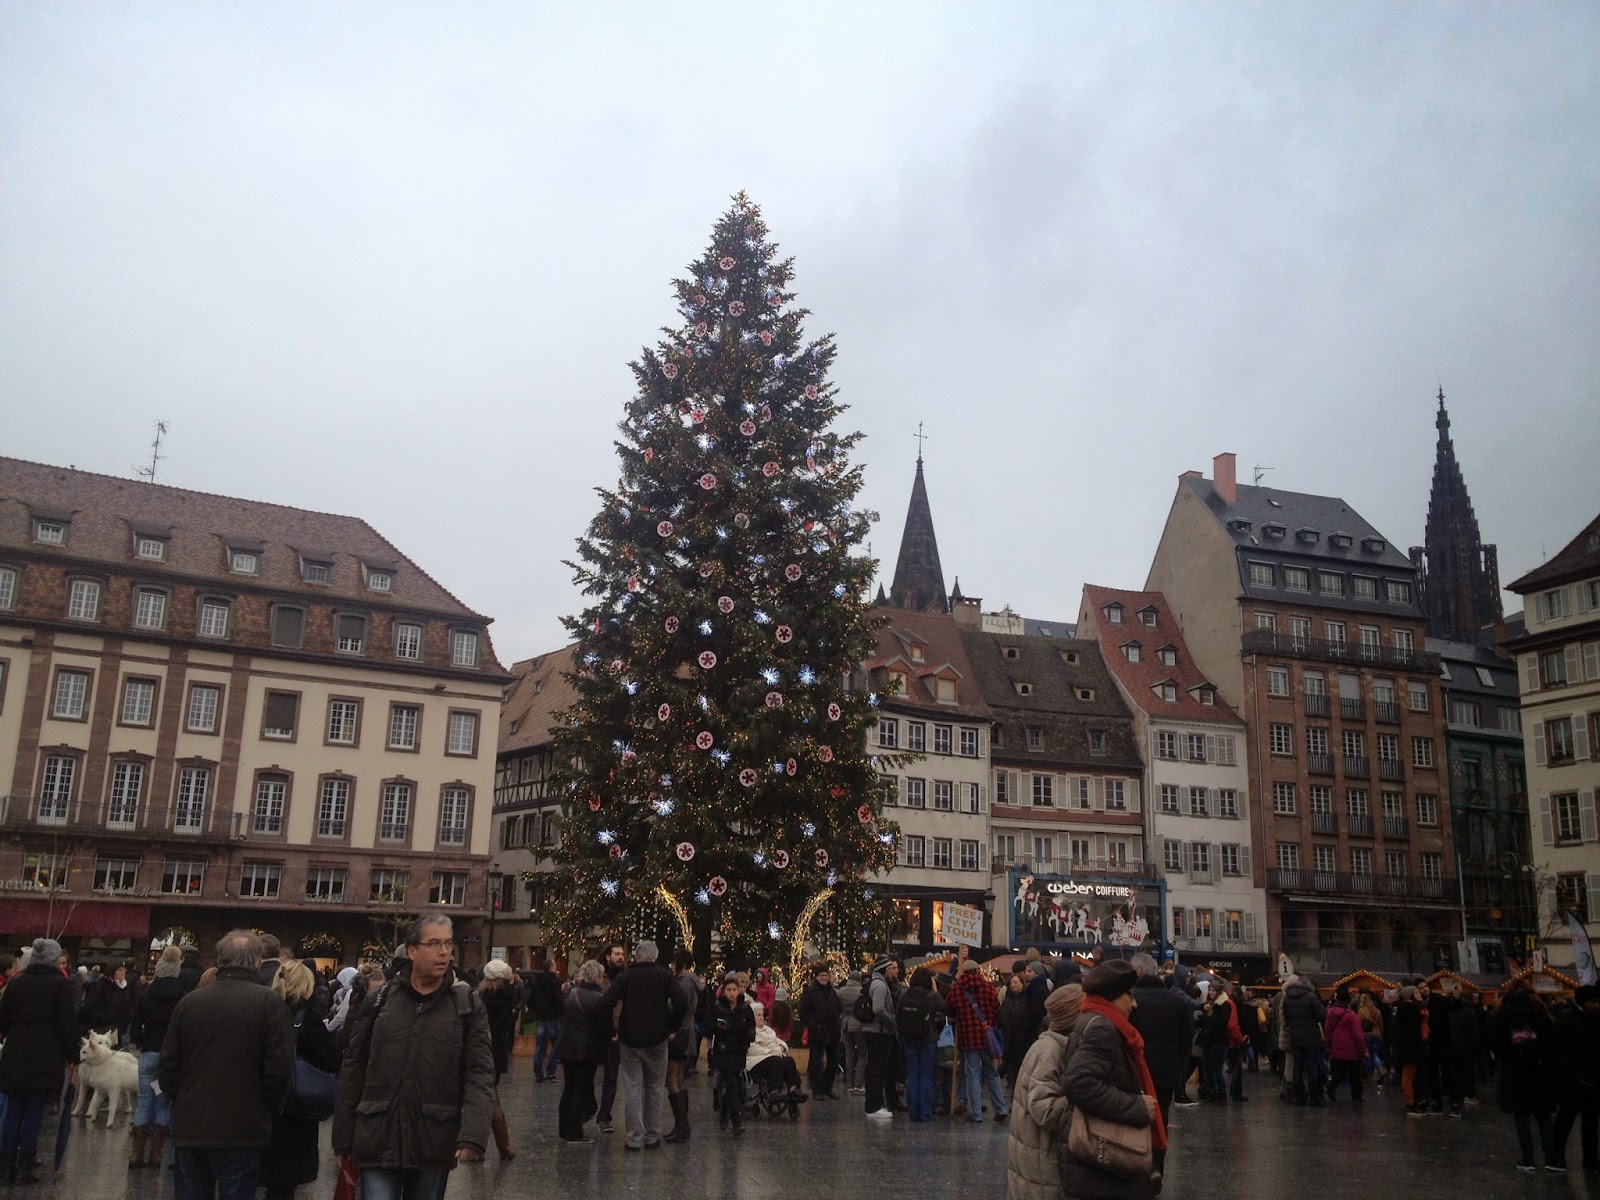 Christmas tree in the Place Kléber, Strasbourg, France